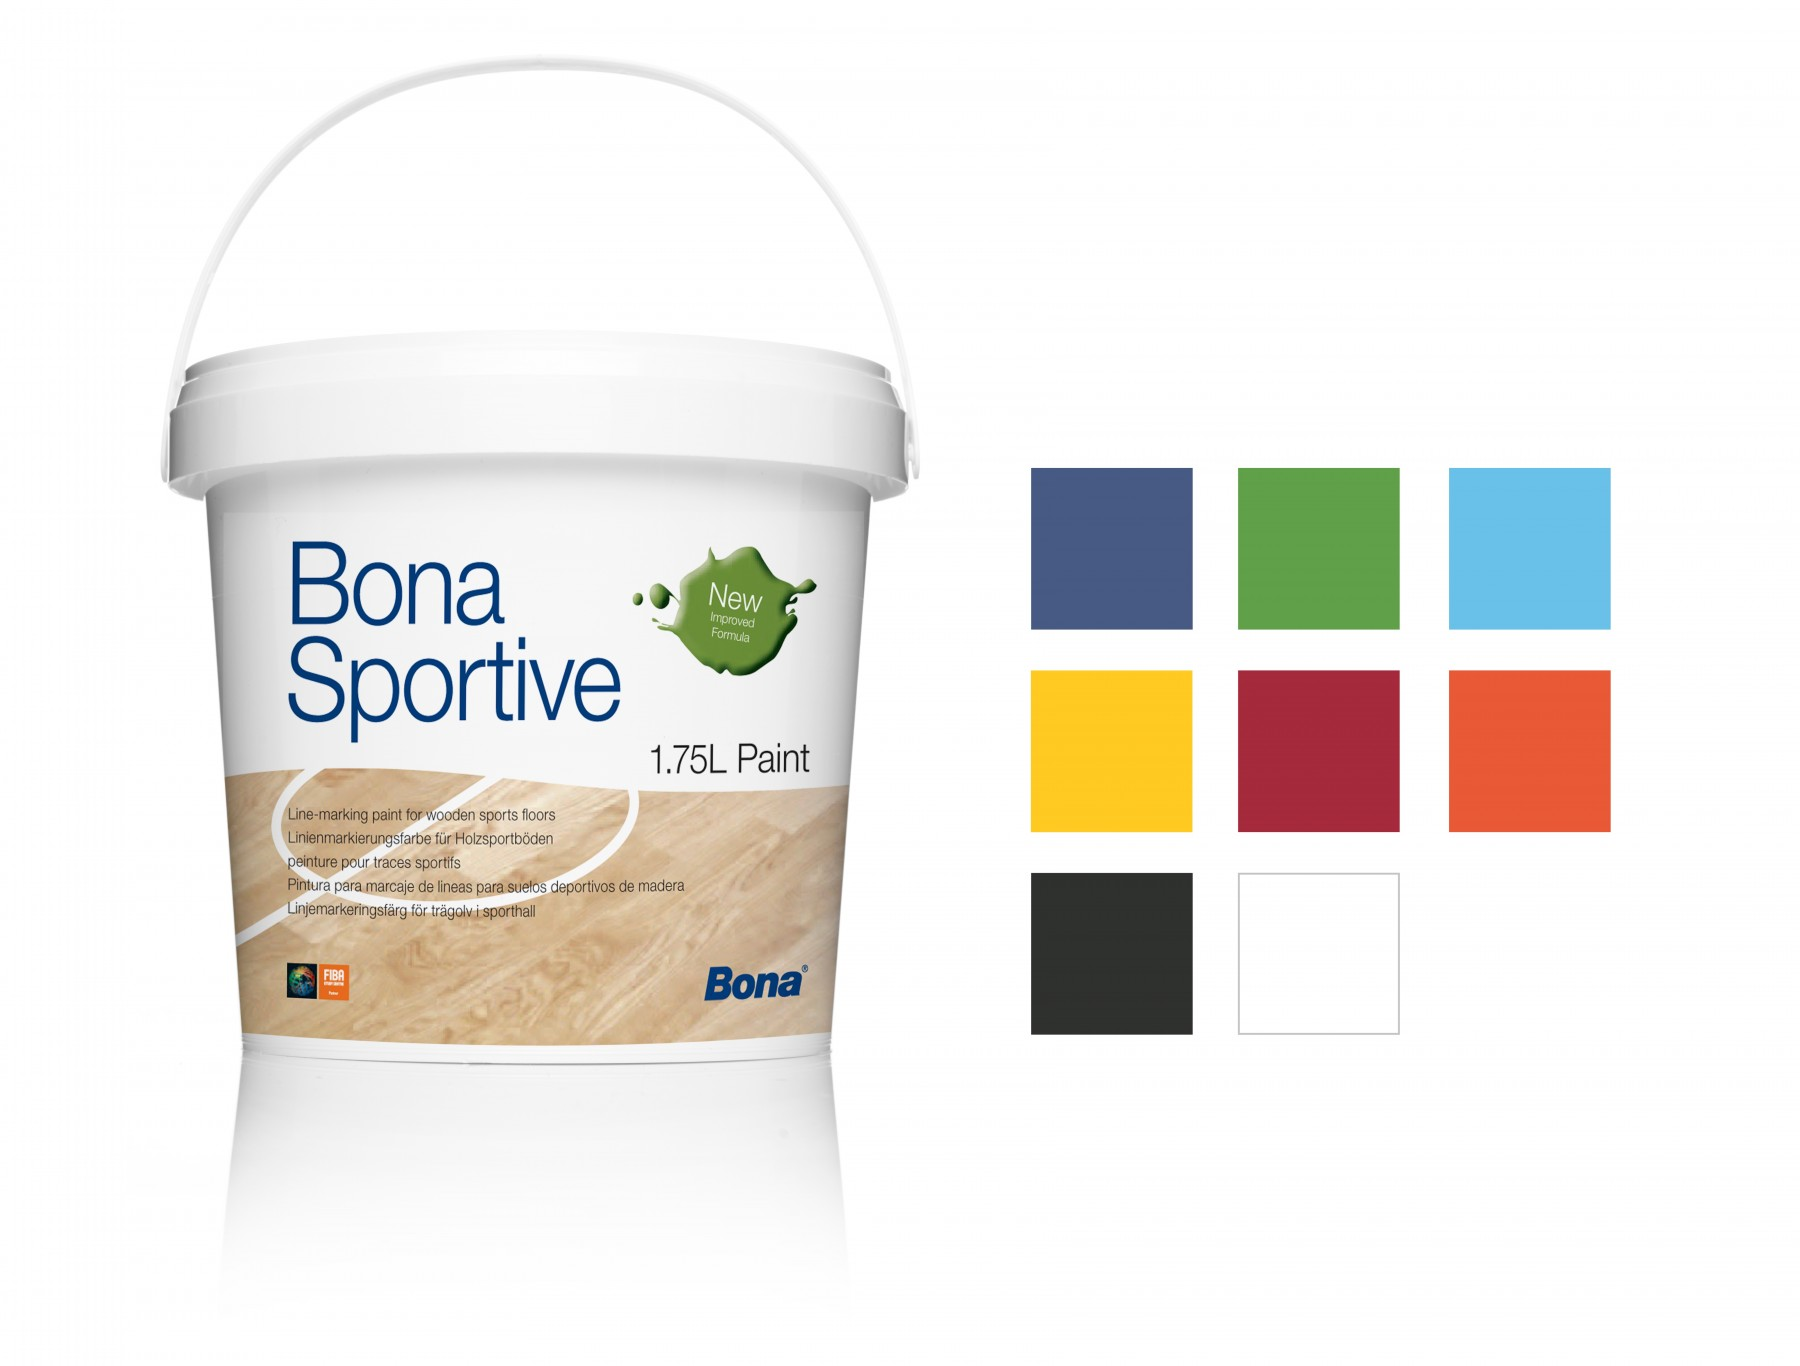 Bona Sportive Paint Black 1,75L